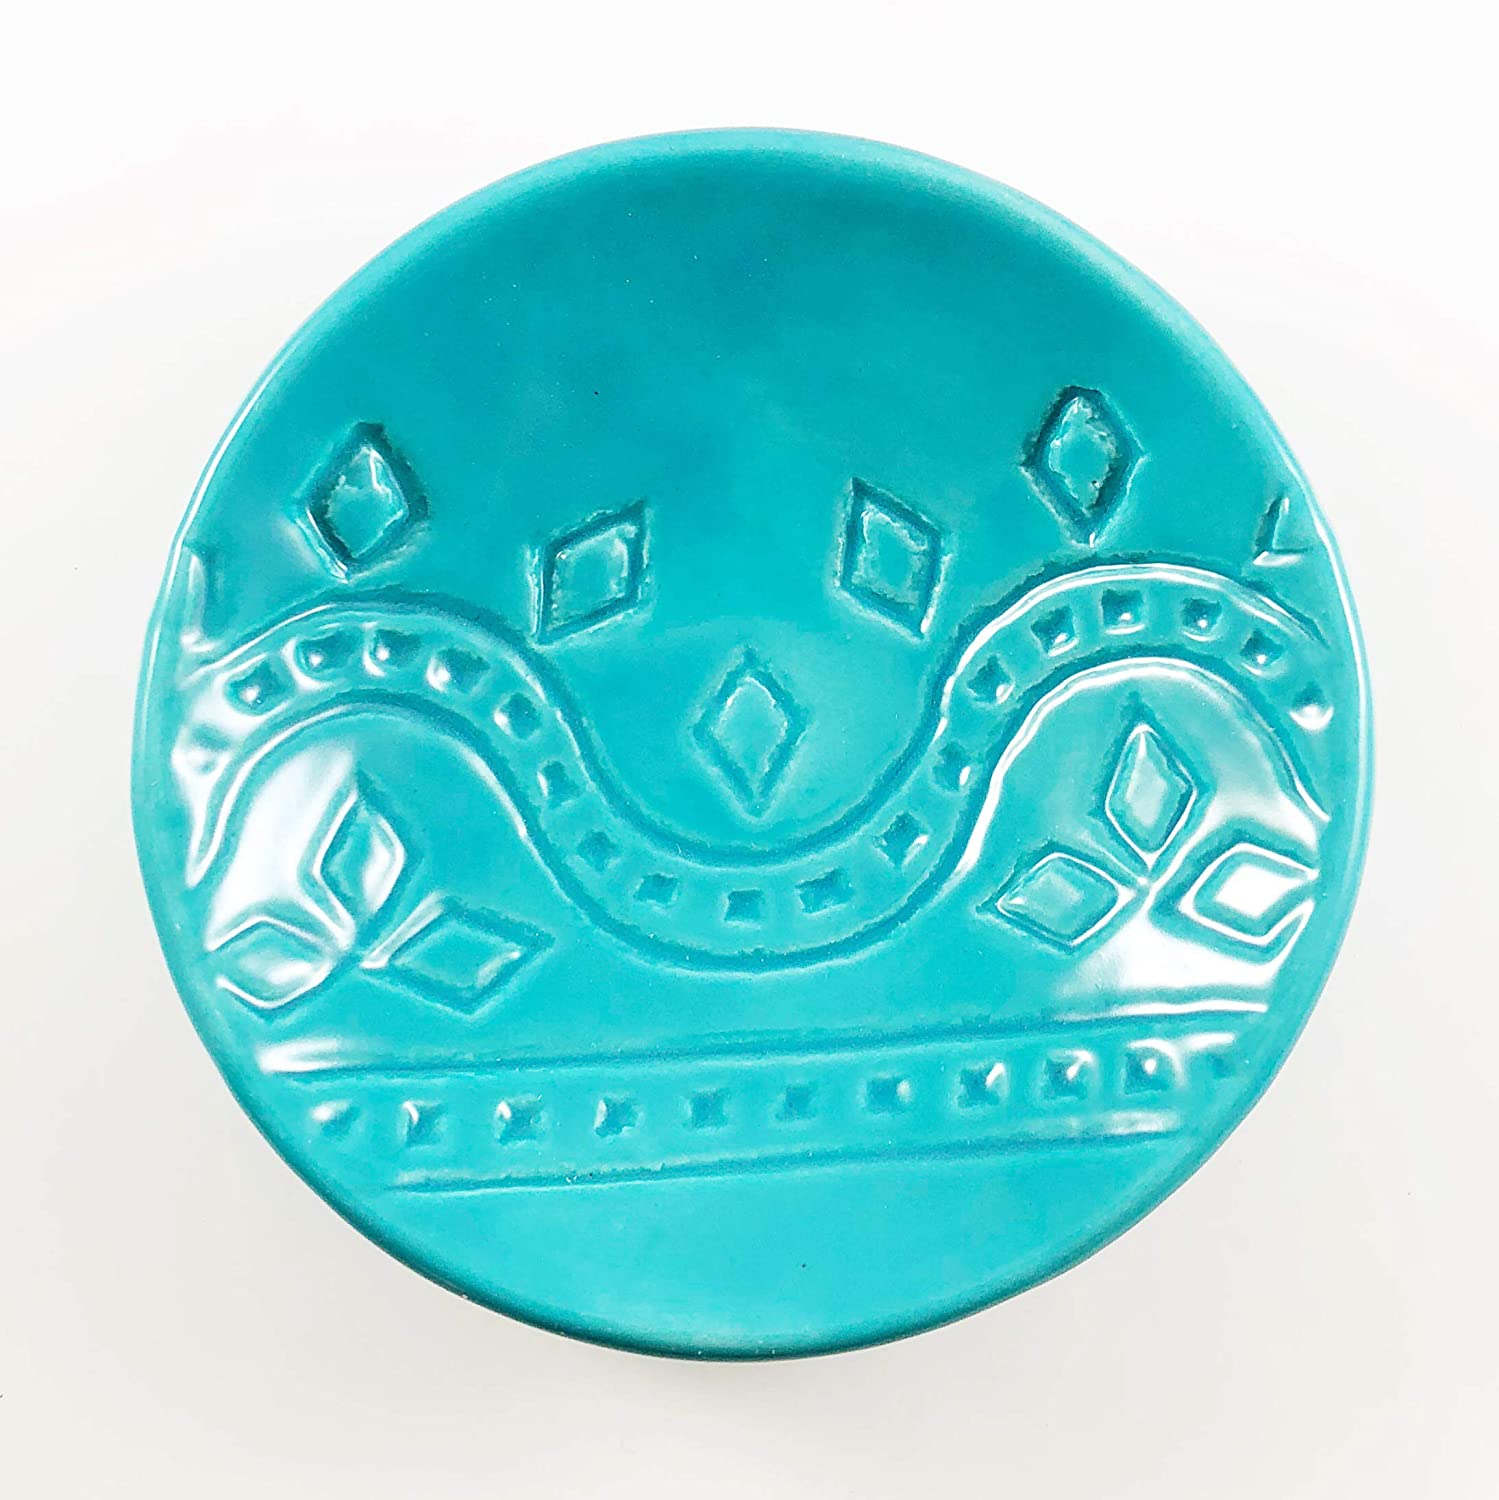 Turquoise Ring Dish - Handmade Jewelry Bowl with geometric pattern and light aqua glaze